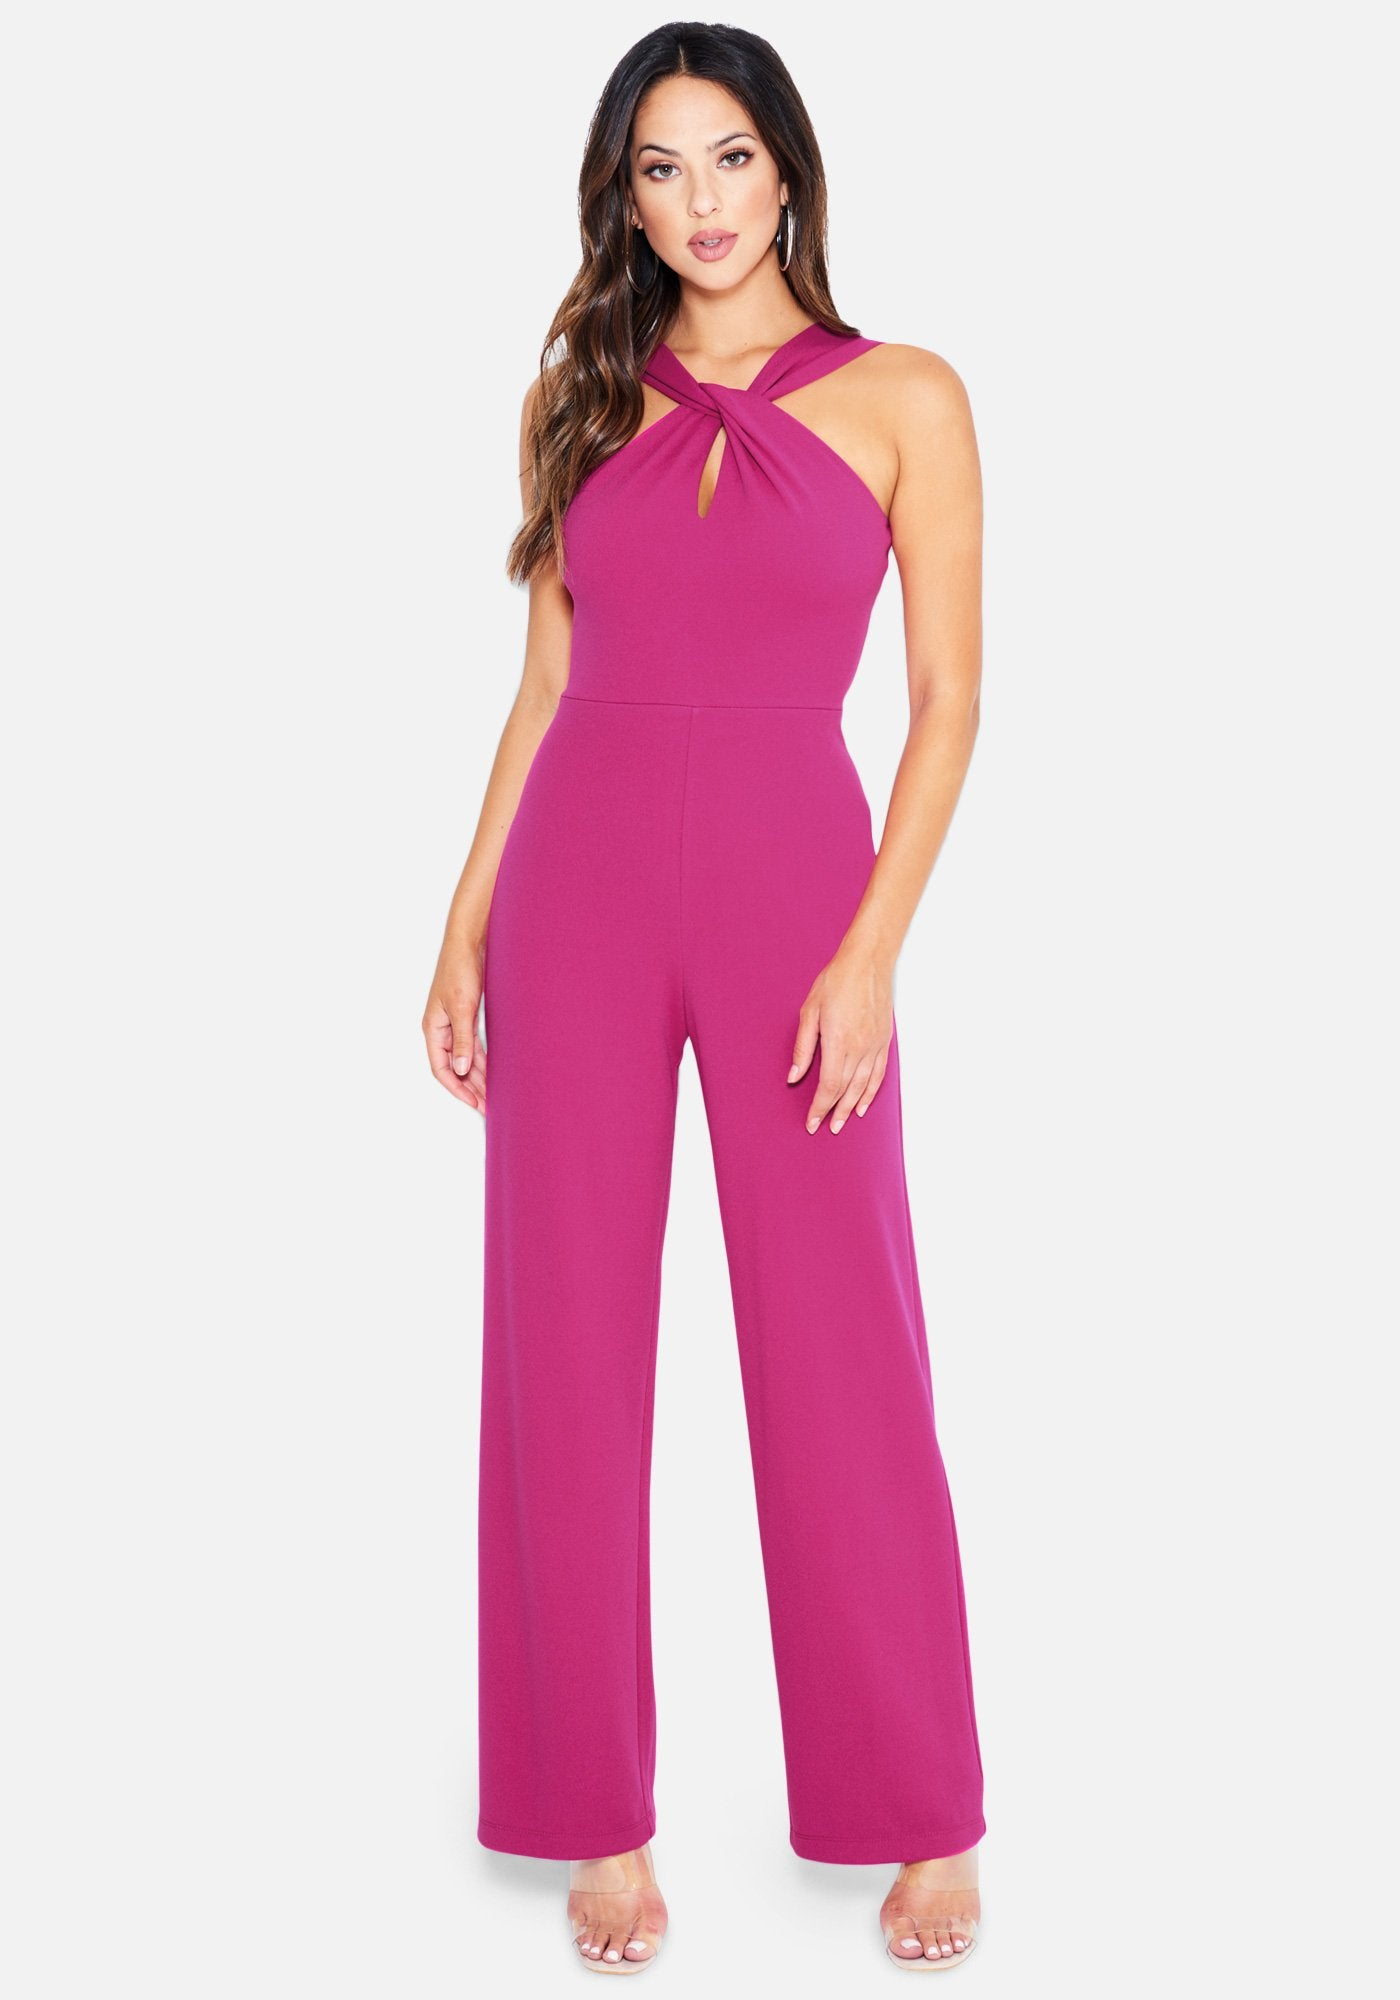 Image of Bebe Women's Keyhole Halter Neck Jumpsuit, Size Large in Fuschia Polyester